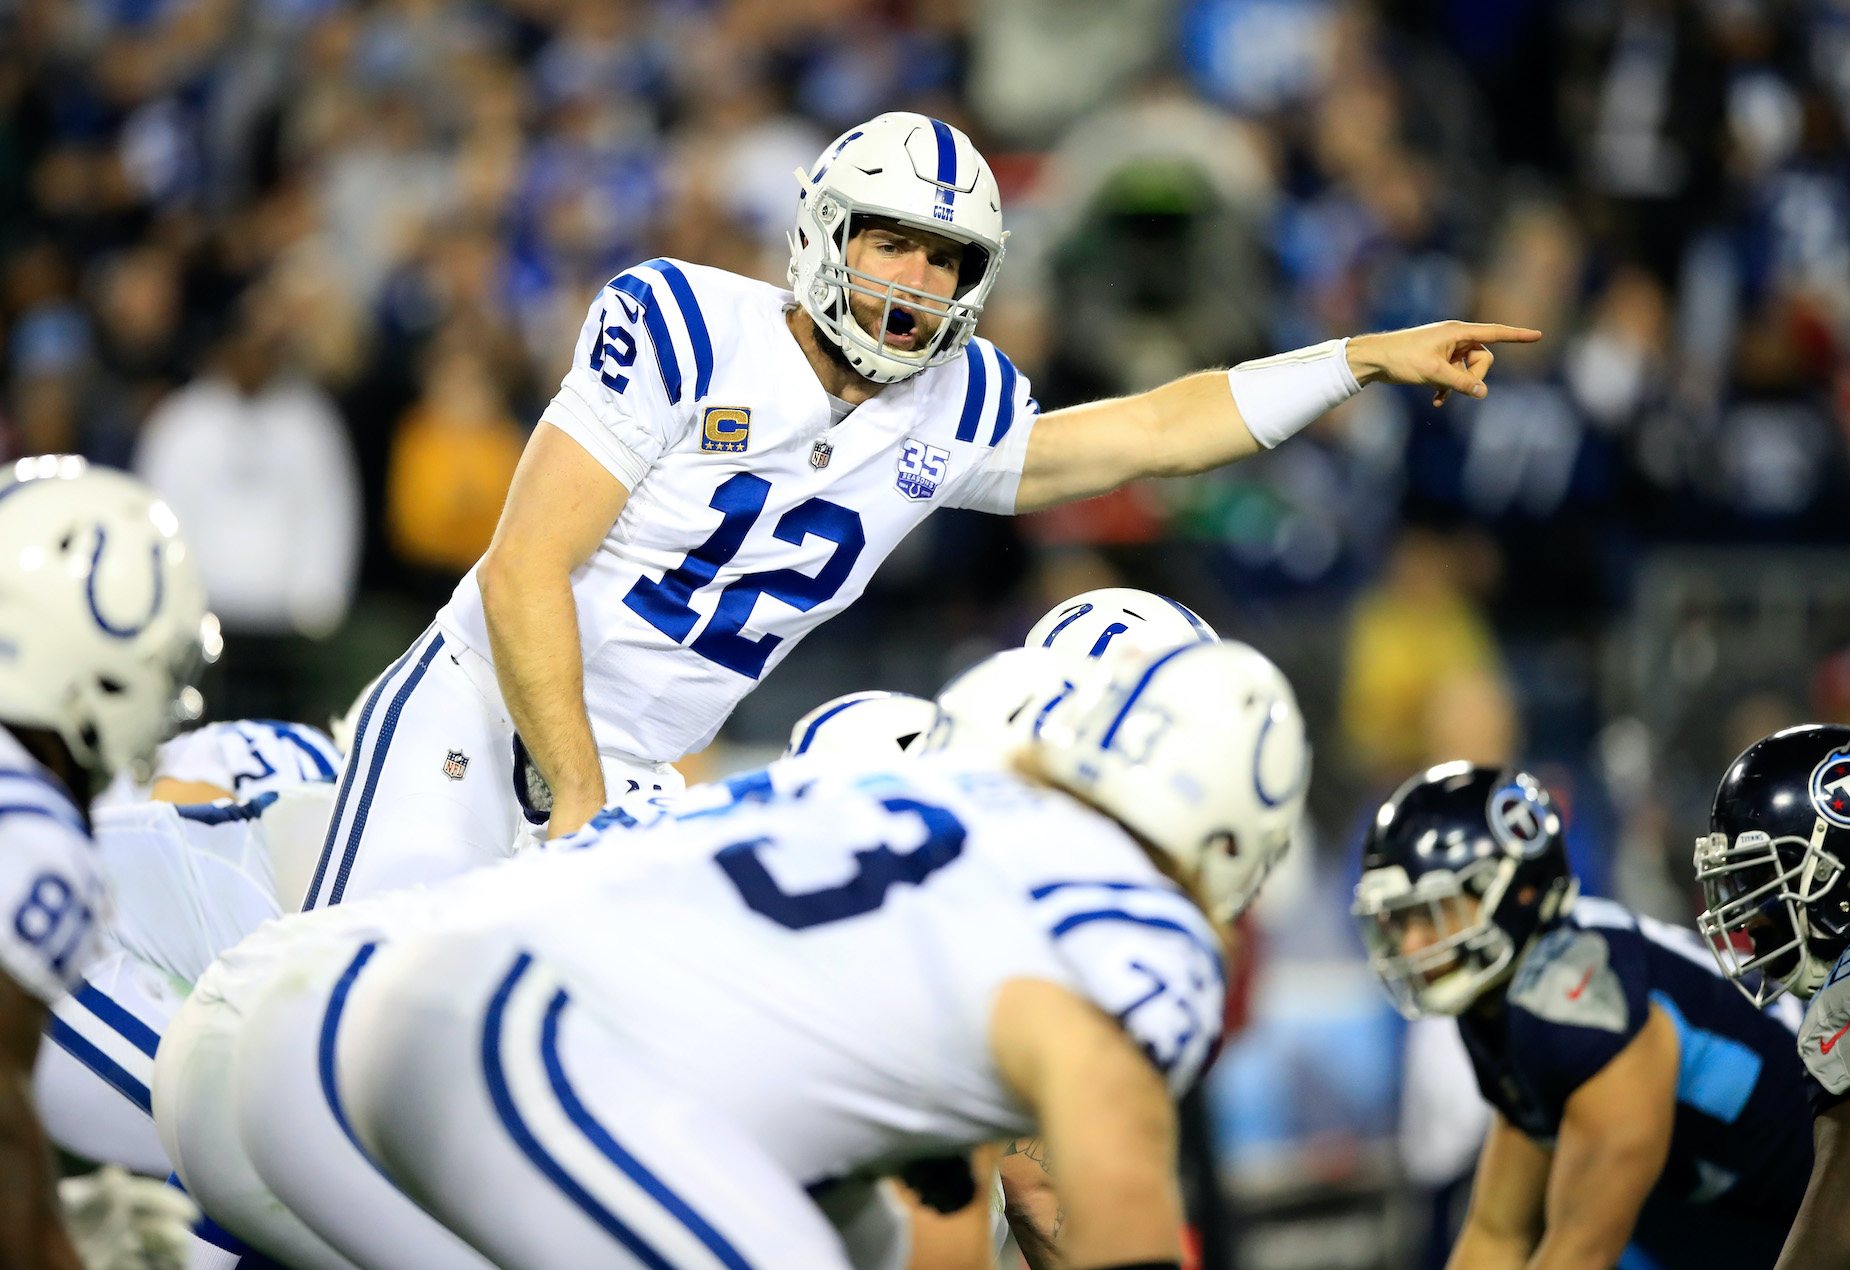 While the Indianapolis Colts would love to see Andrew Luck make a comeback, the team won't be holding their breath.